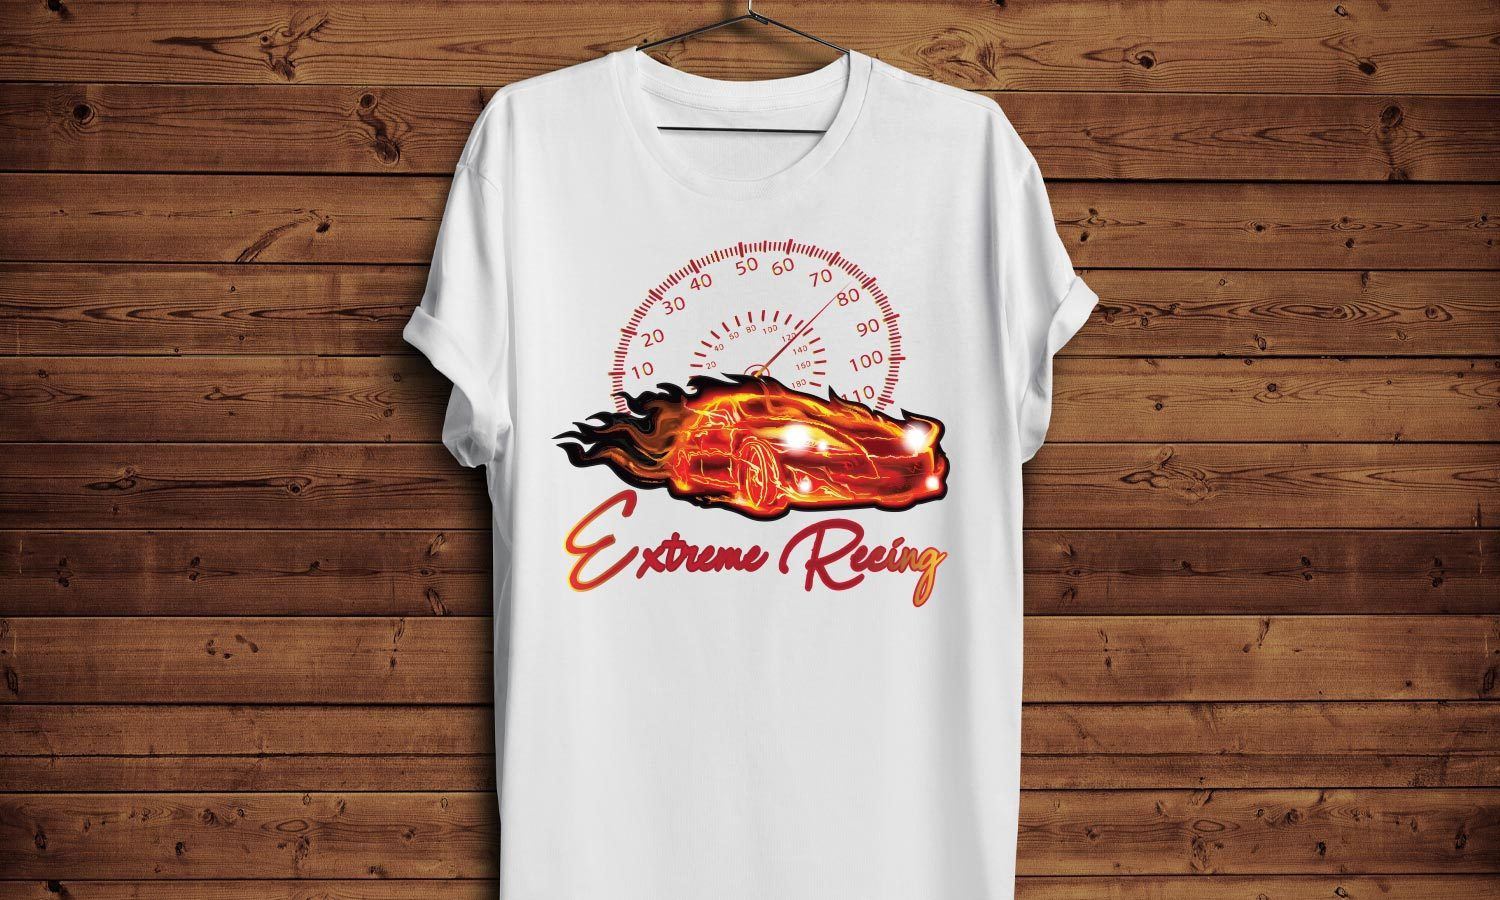 Extreme Racing - Printed T-Shirt for Men, Women and Kids - TS248